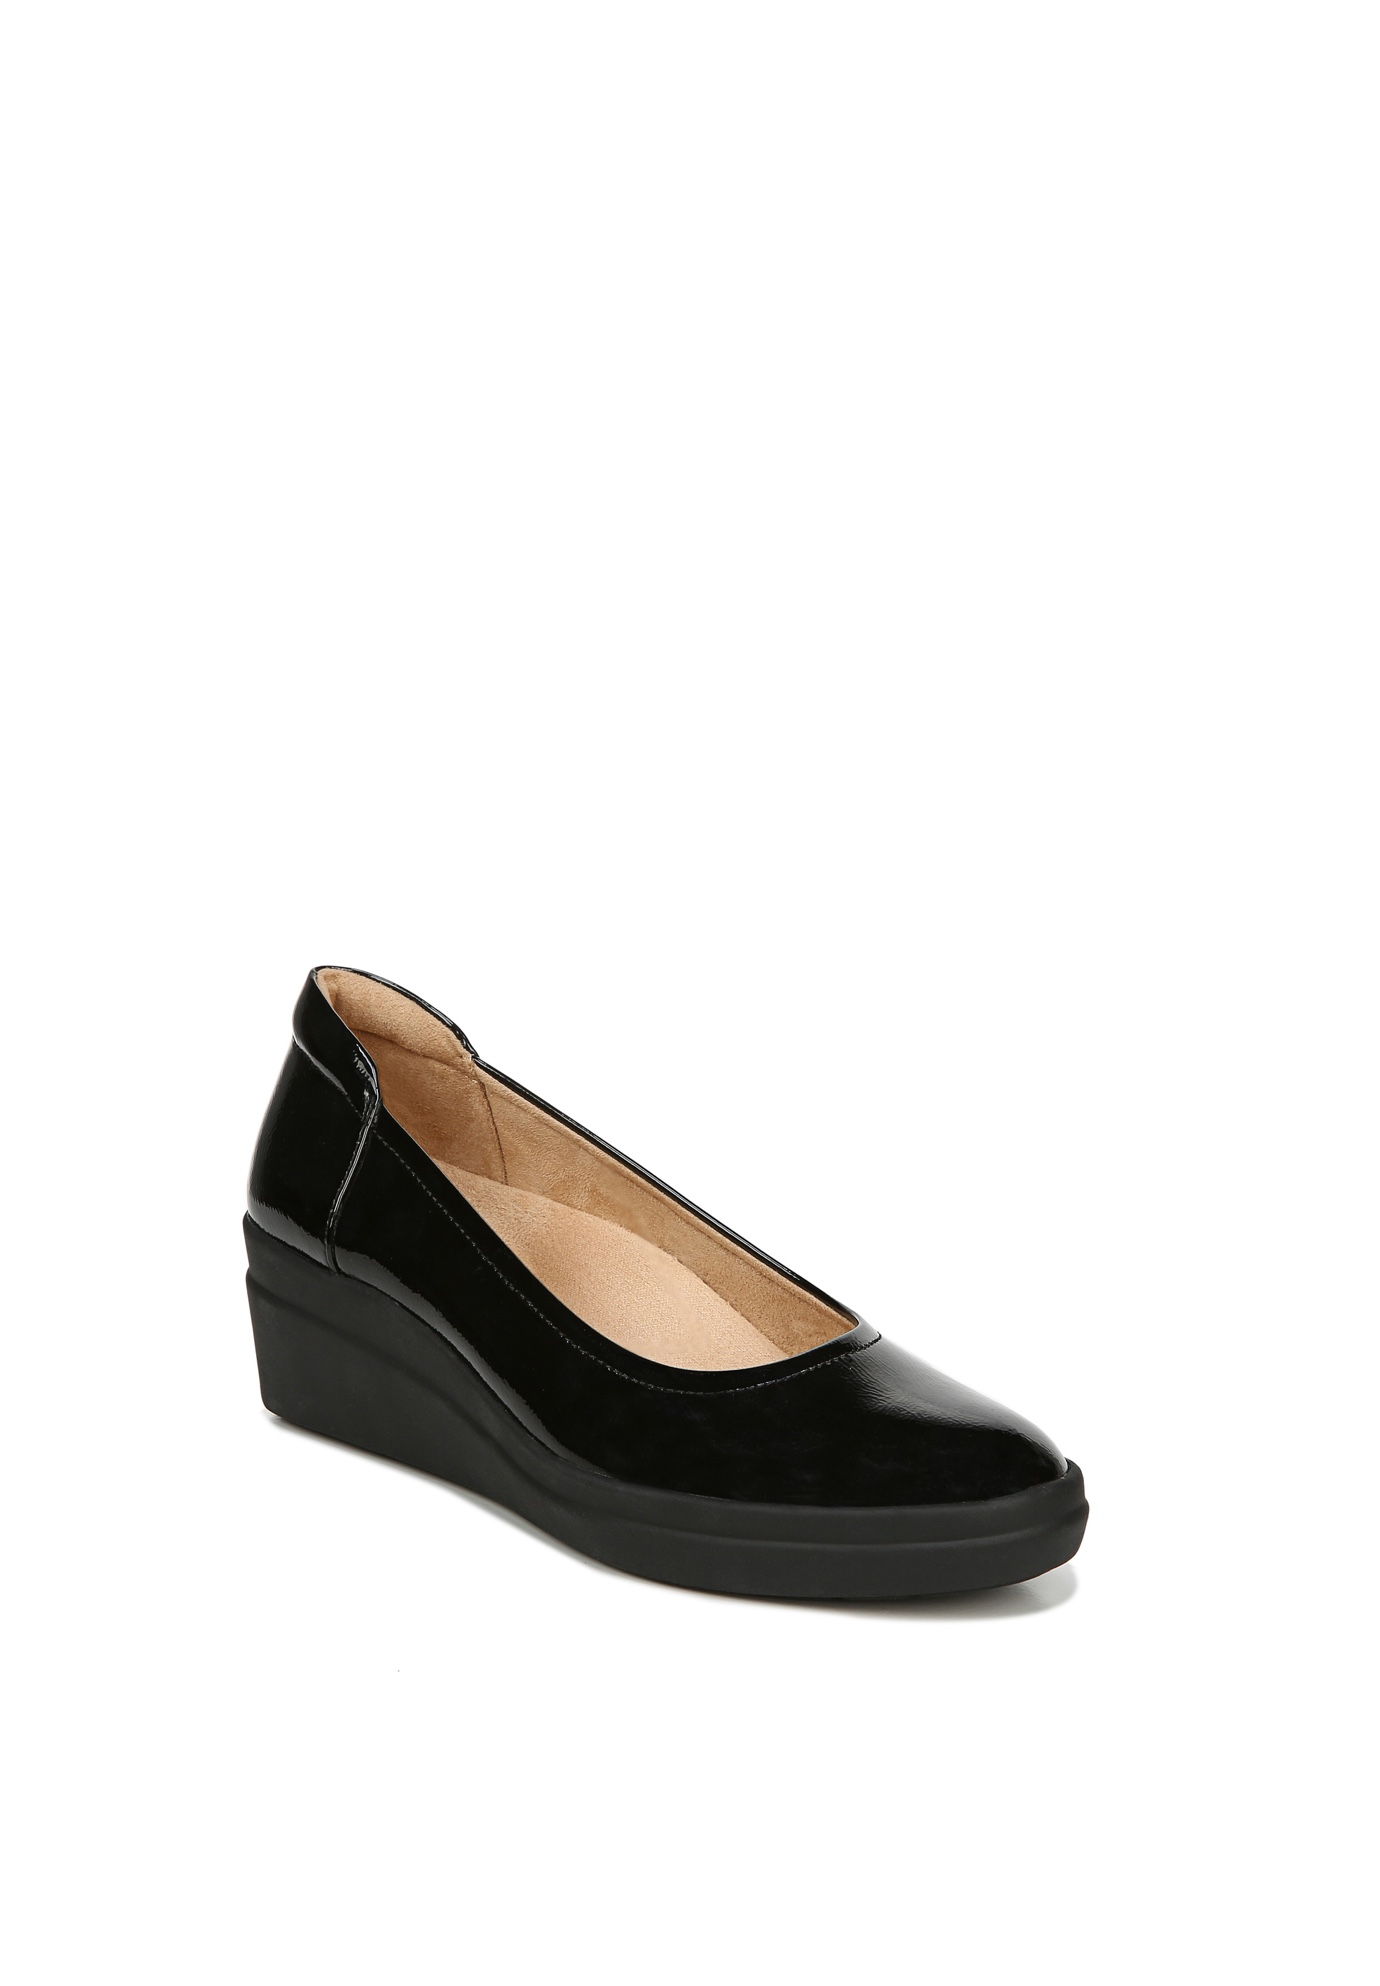 Sam Wedge Ballet Shoe by Naturalizer,